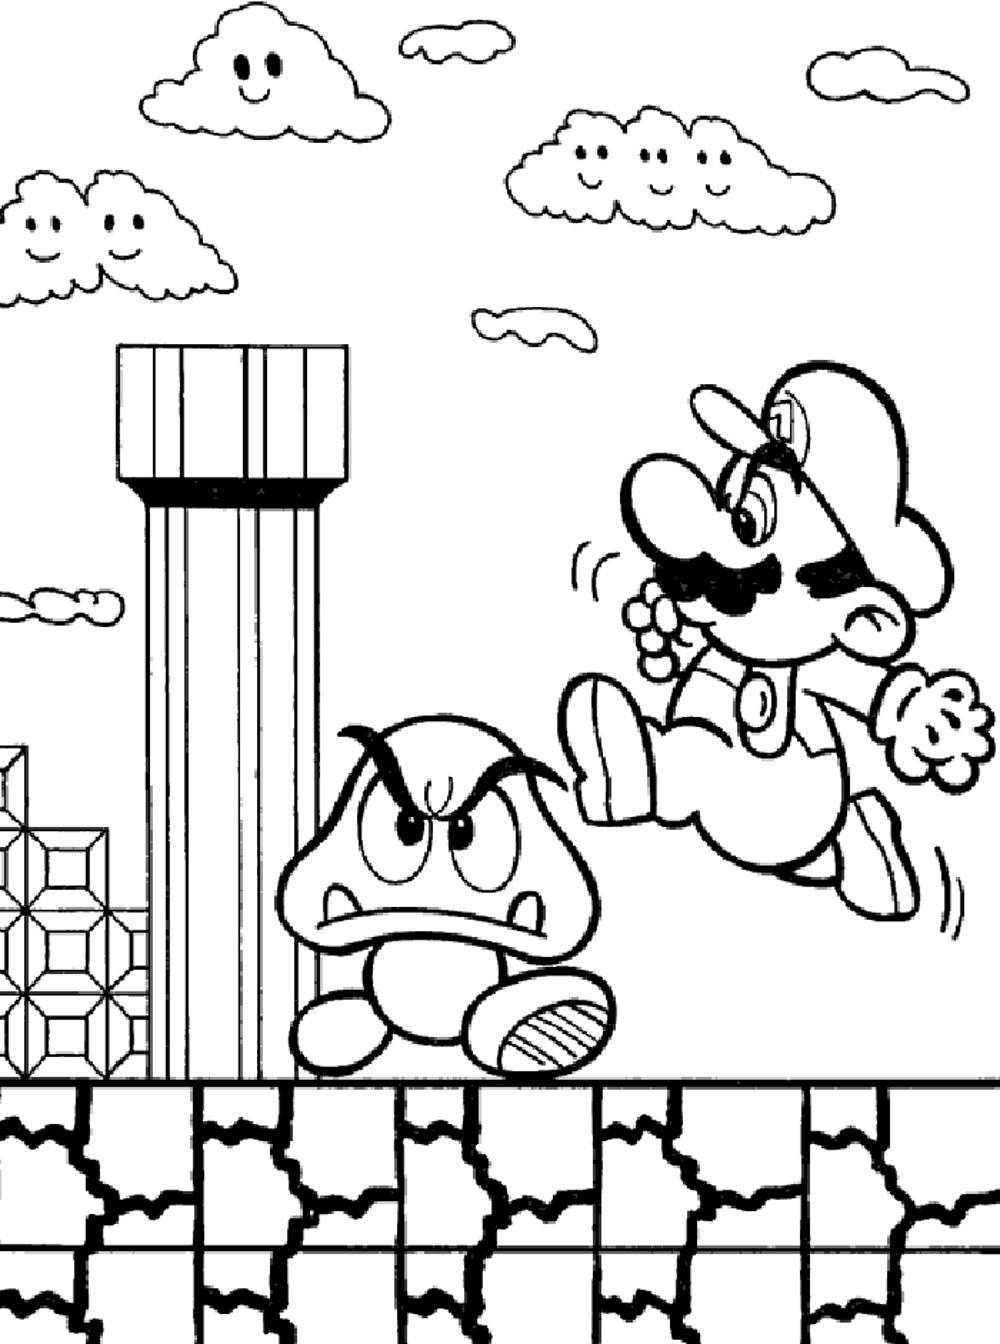 Mario Bros Coloring Pages Printable Portugu S Pinterest Printable Of Toad Mario Drawing at Getdrawings Gallery